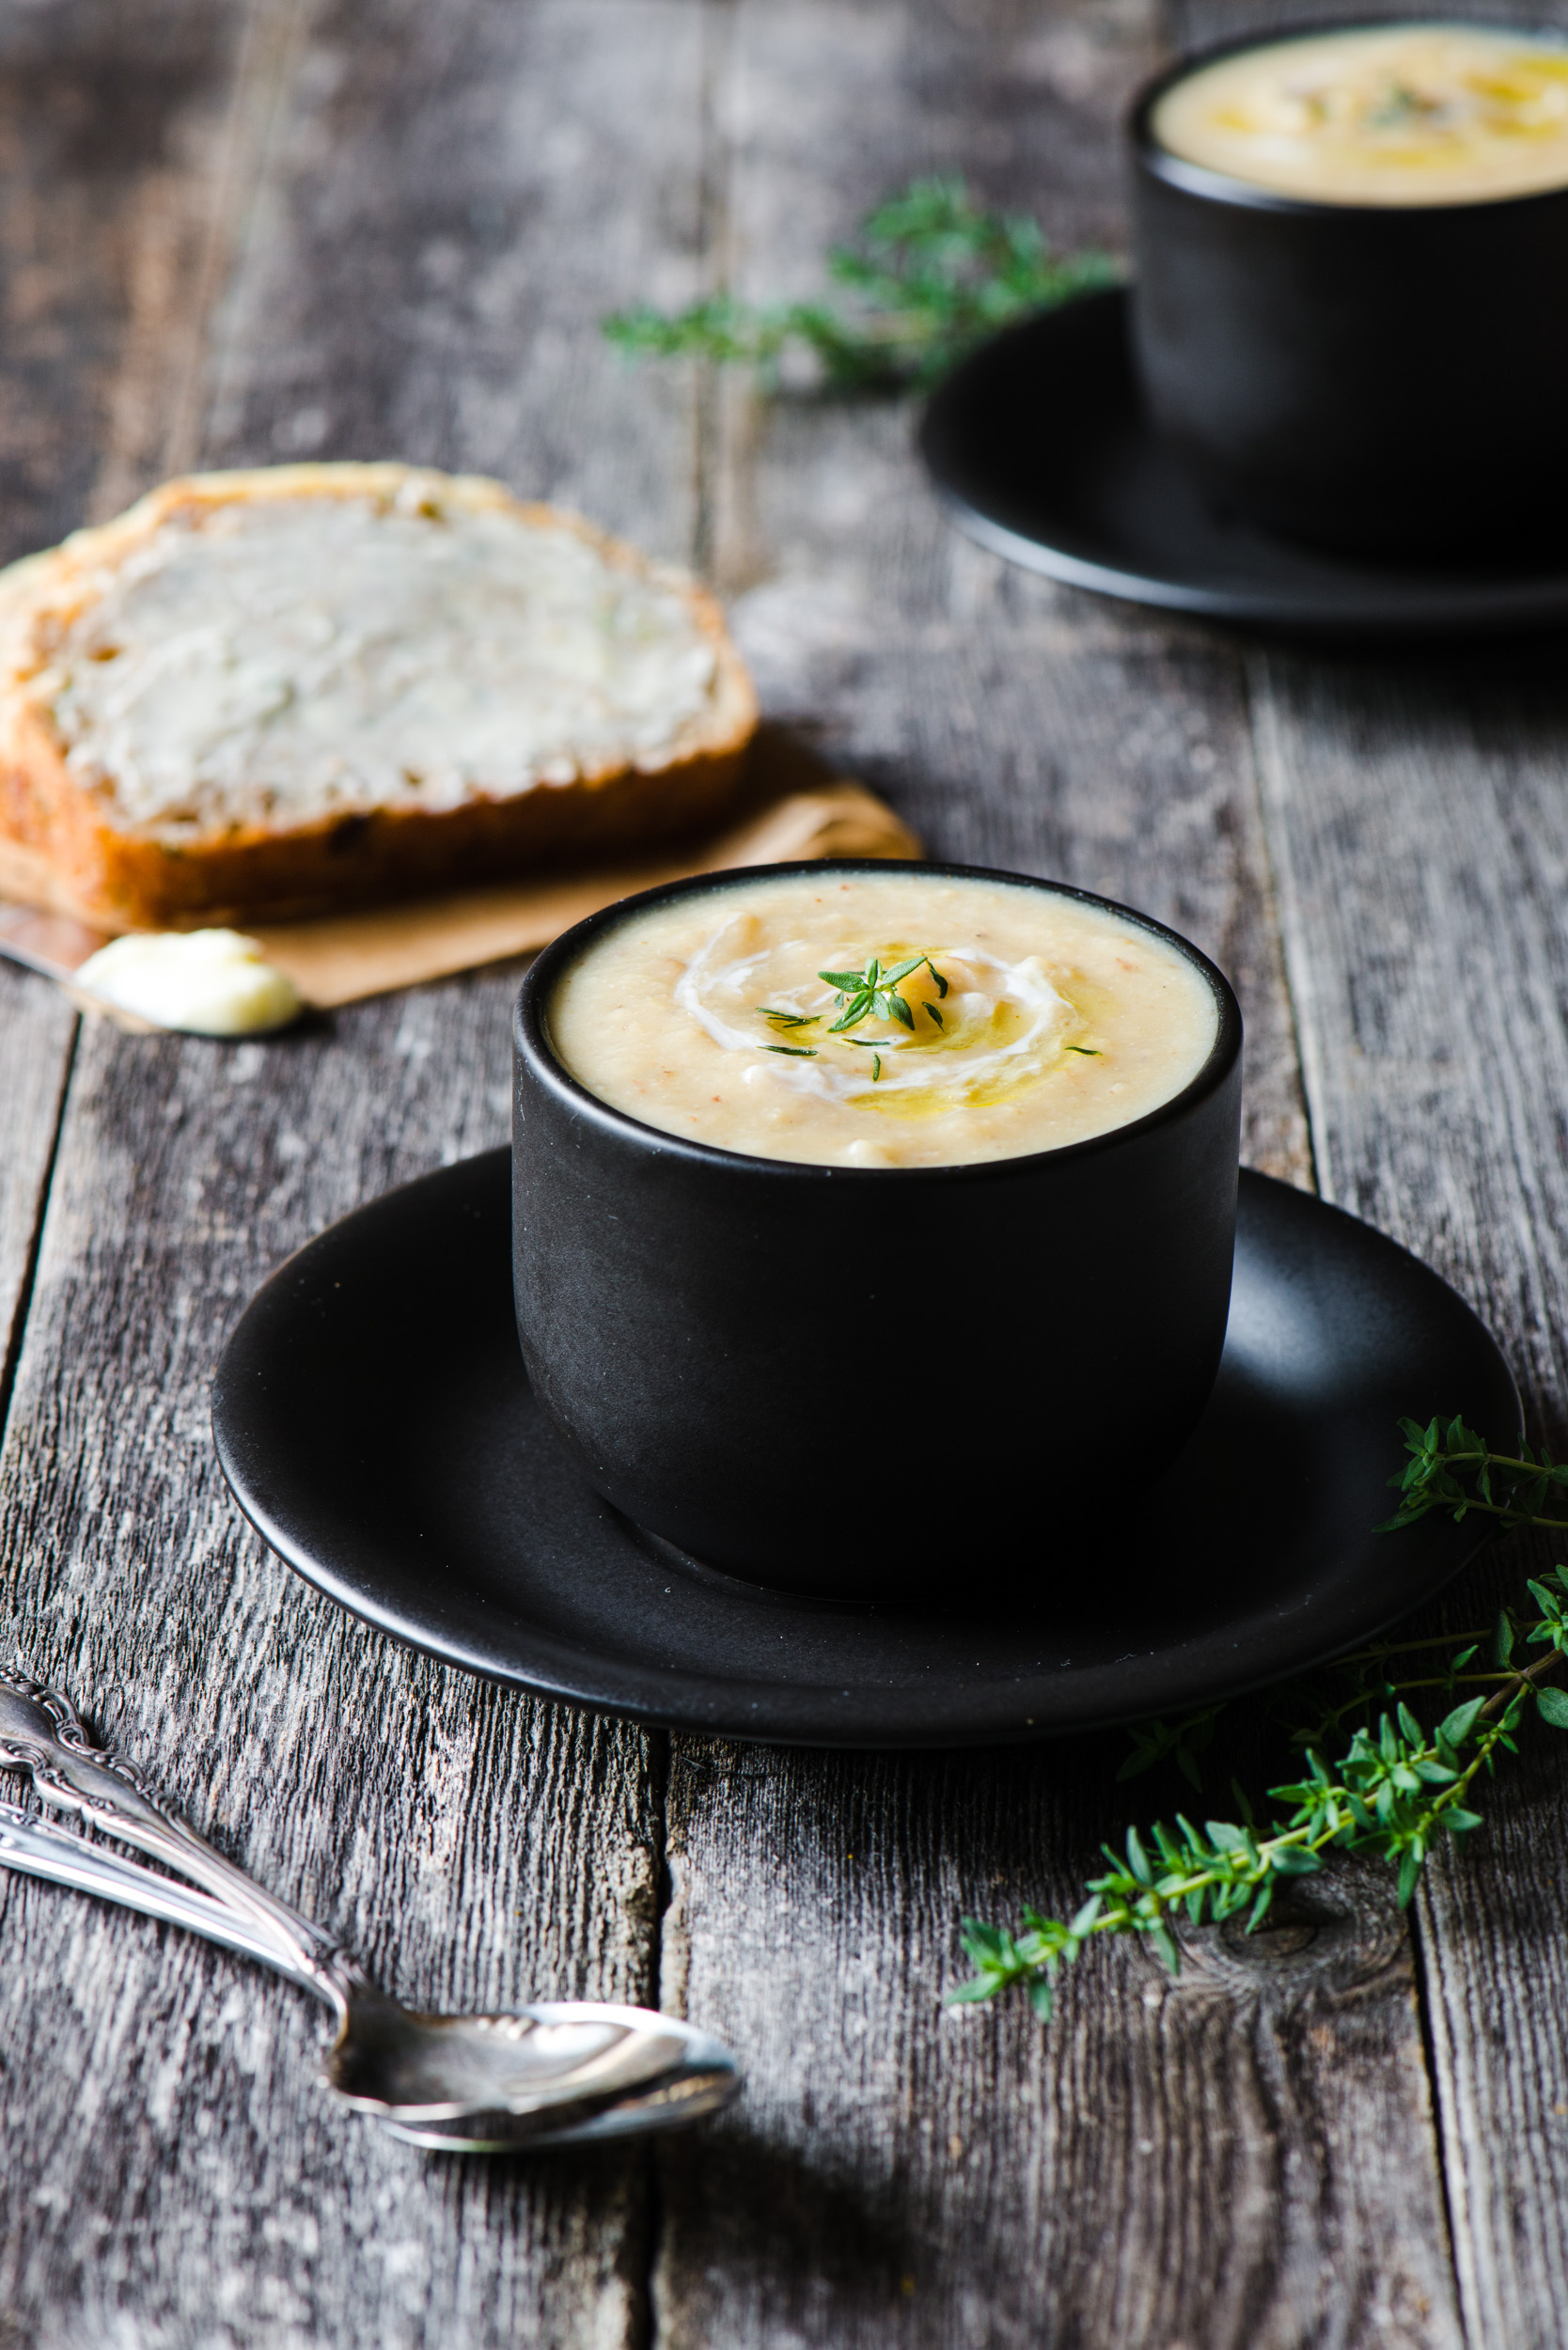 The Adventures of Bob & Shan - Cauliflower Zucchini Soup